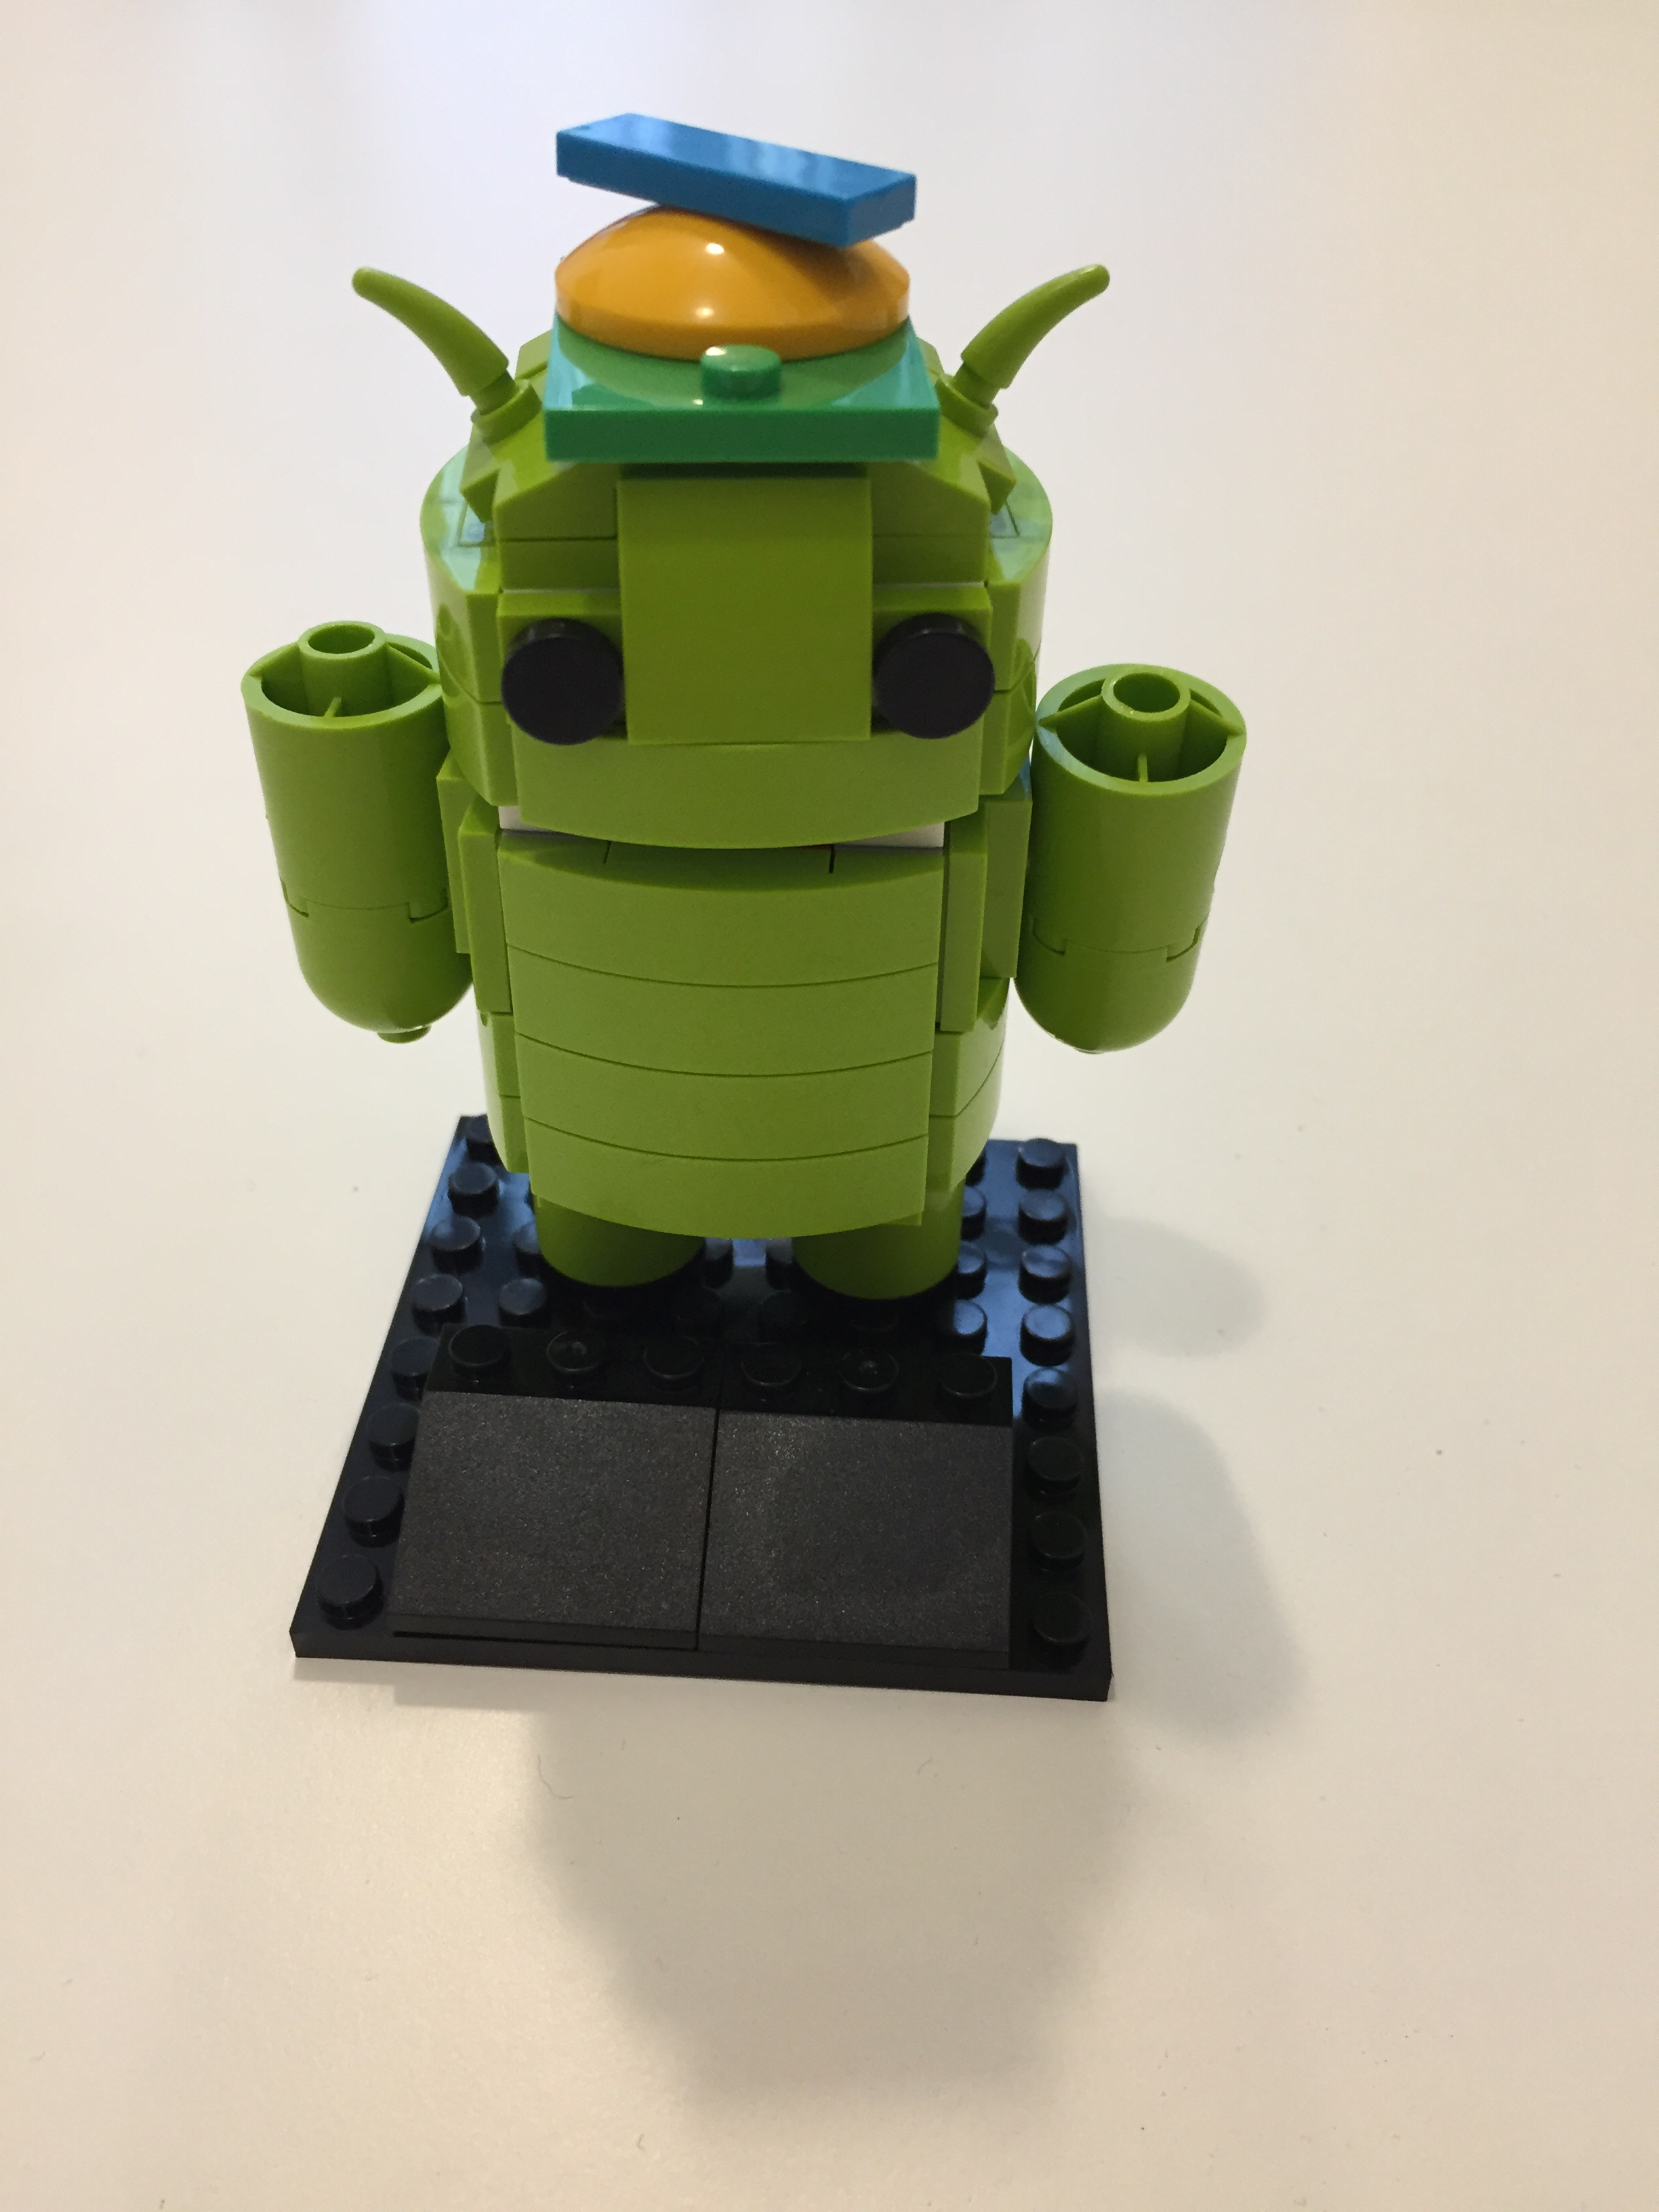 Android robot assembled from blocks